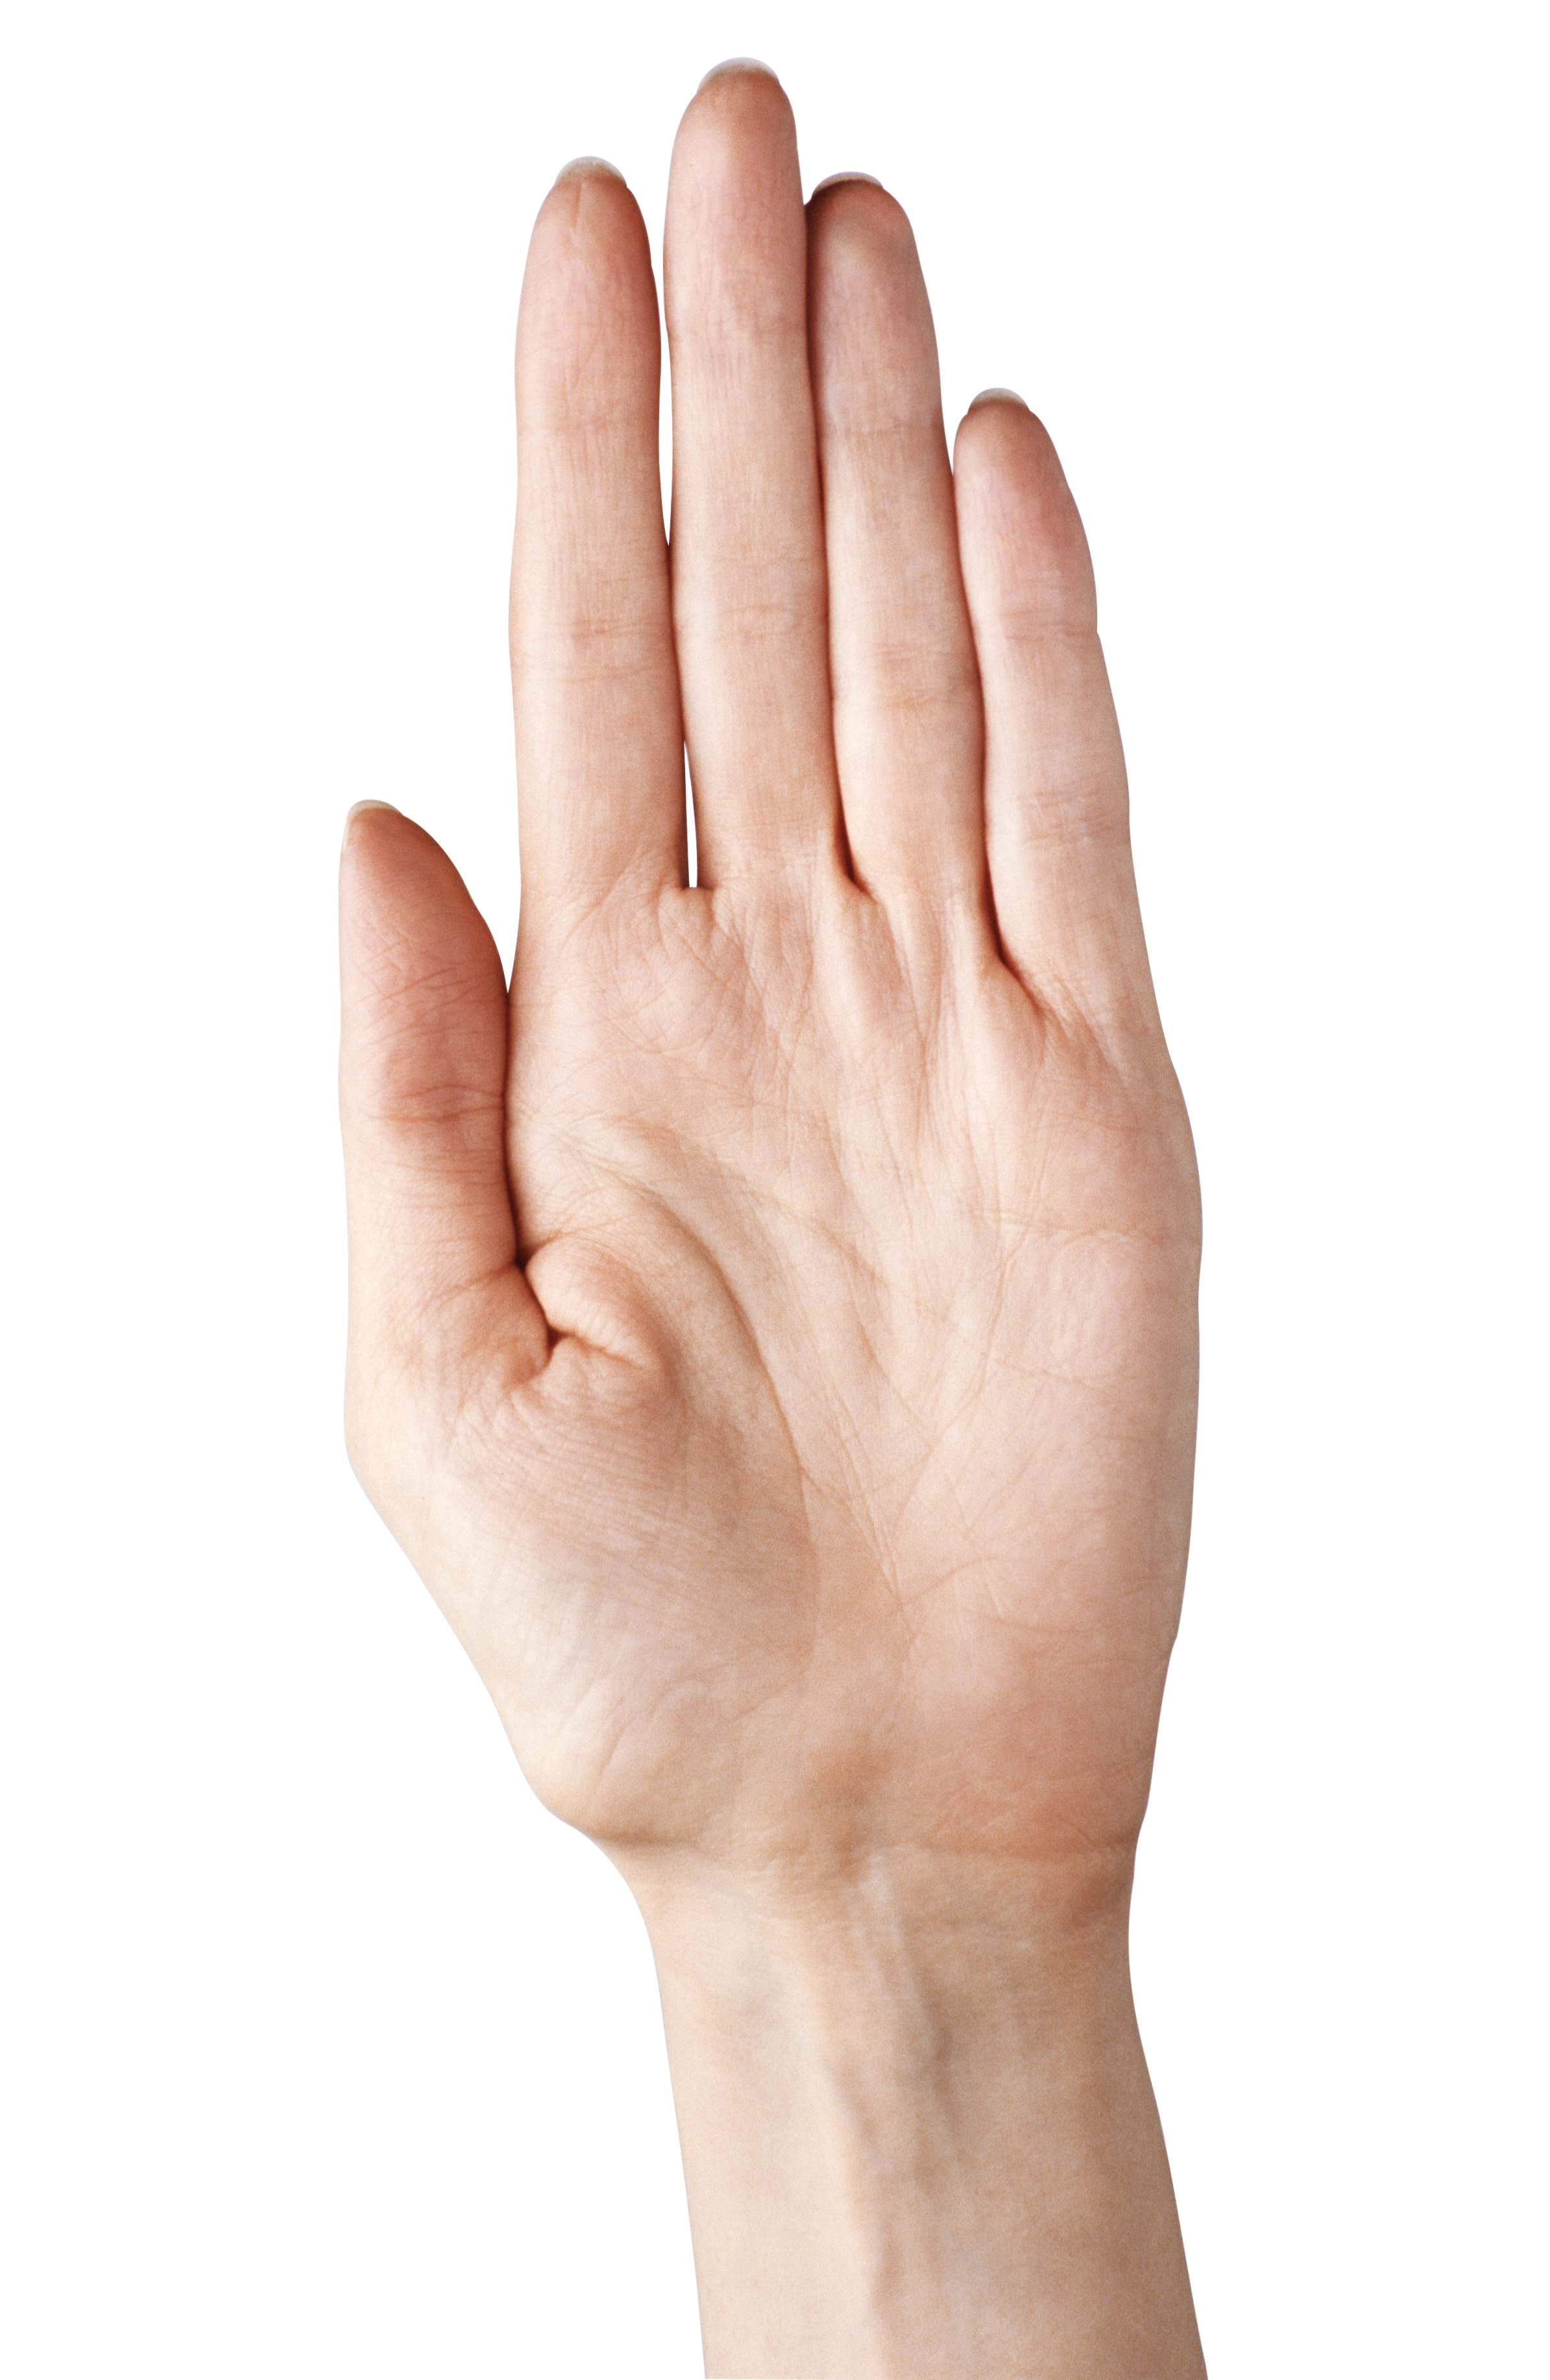 Showing five fingers clipart. Hand finger png image library stock